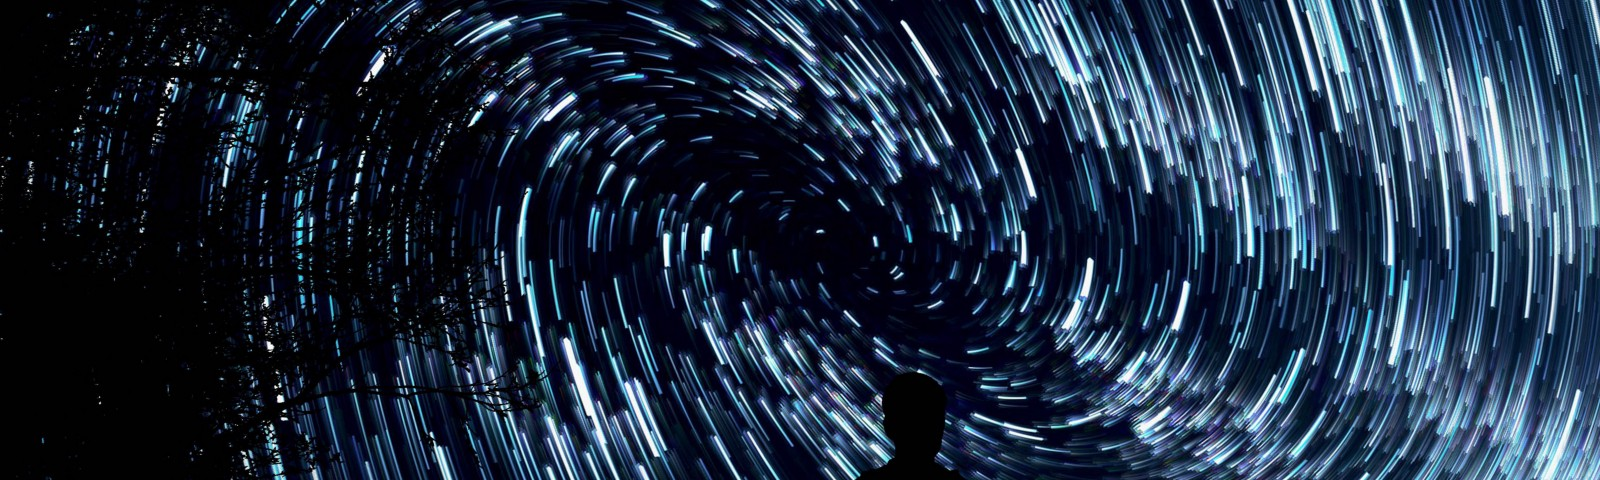 Man staring up at a night sky filled with swirling stars